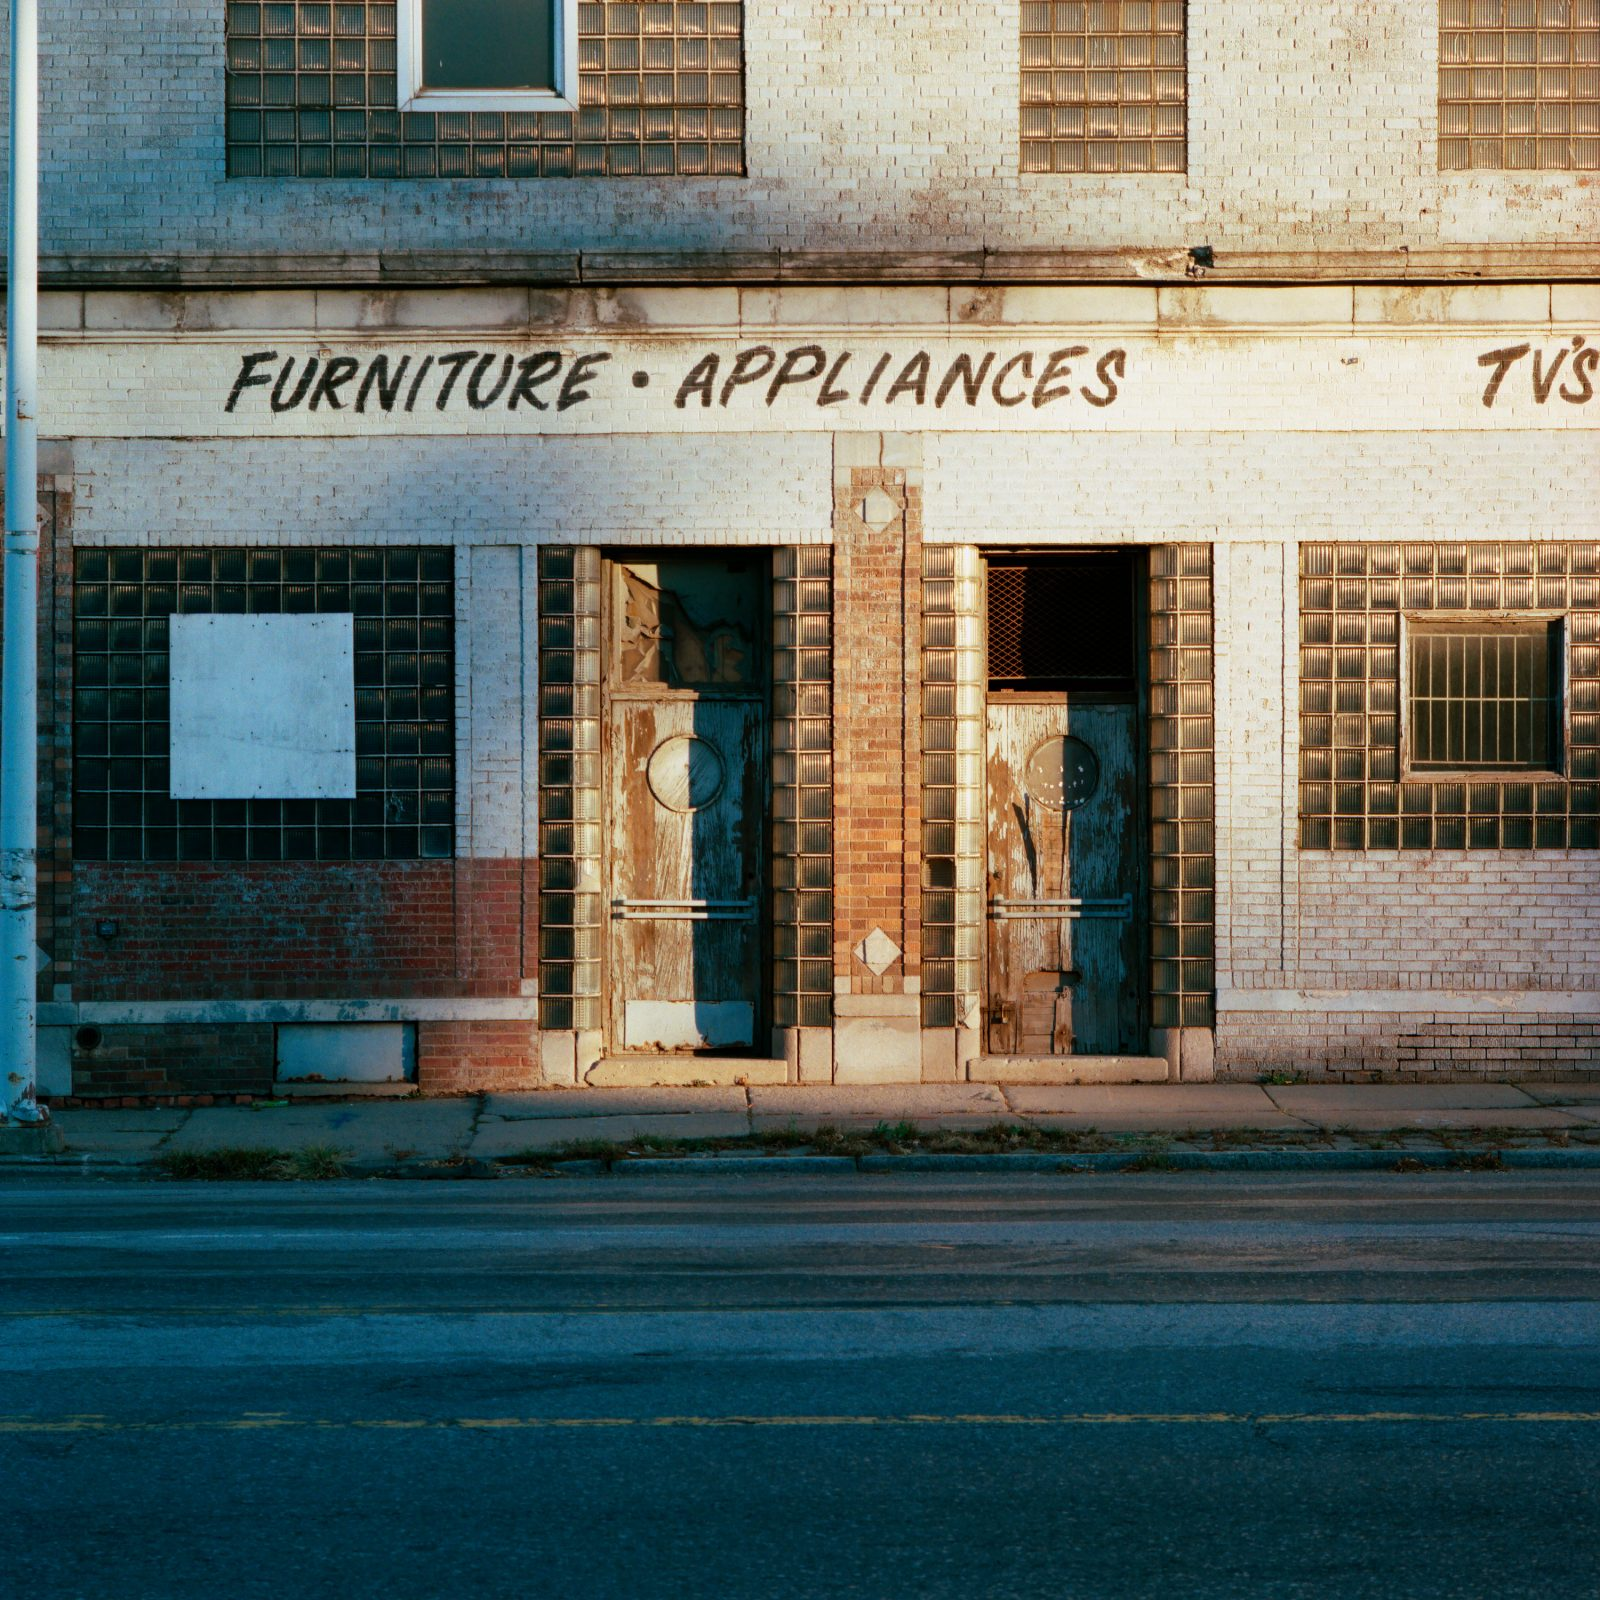 Furniture, Appliances, TVs. Detroit, Michigan.